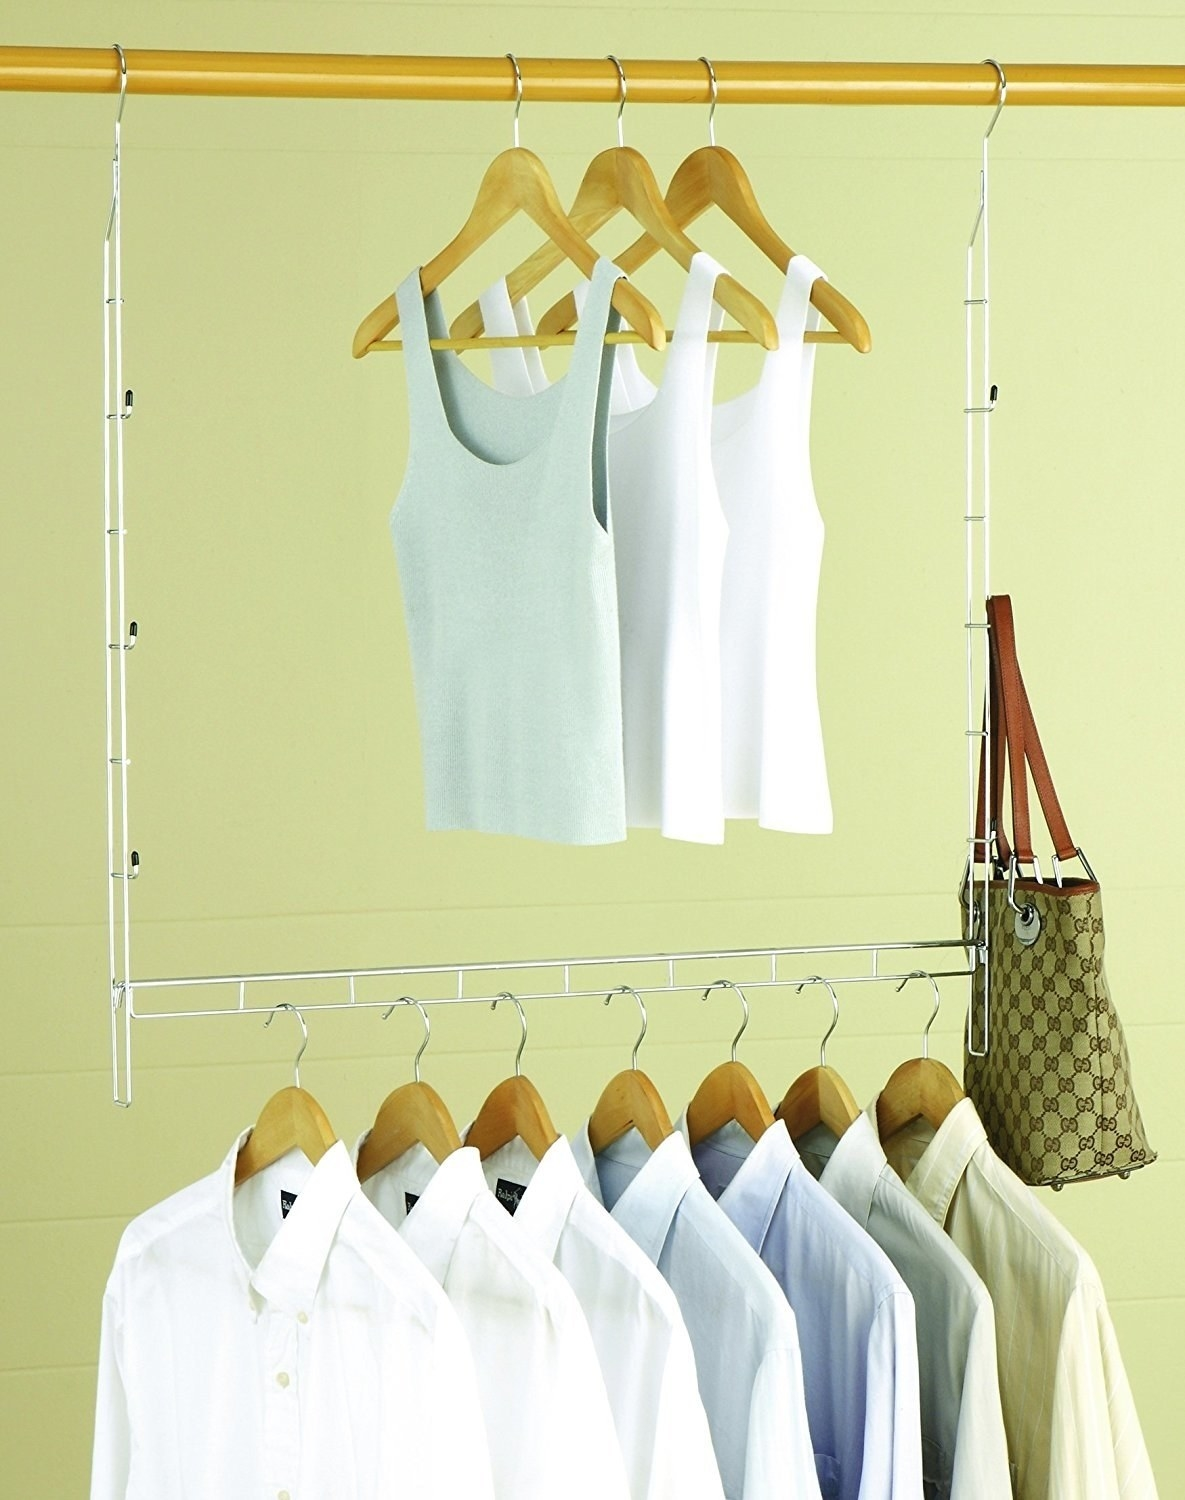 The bar with shirts on hung below a closet rod